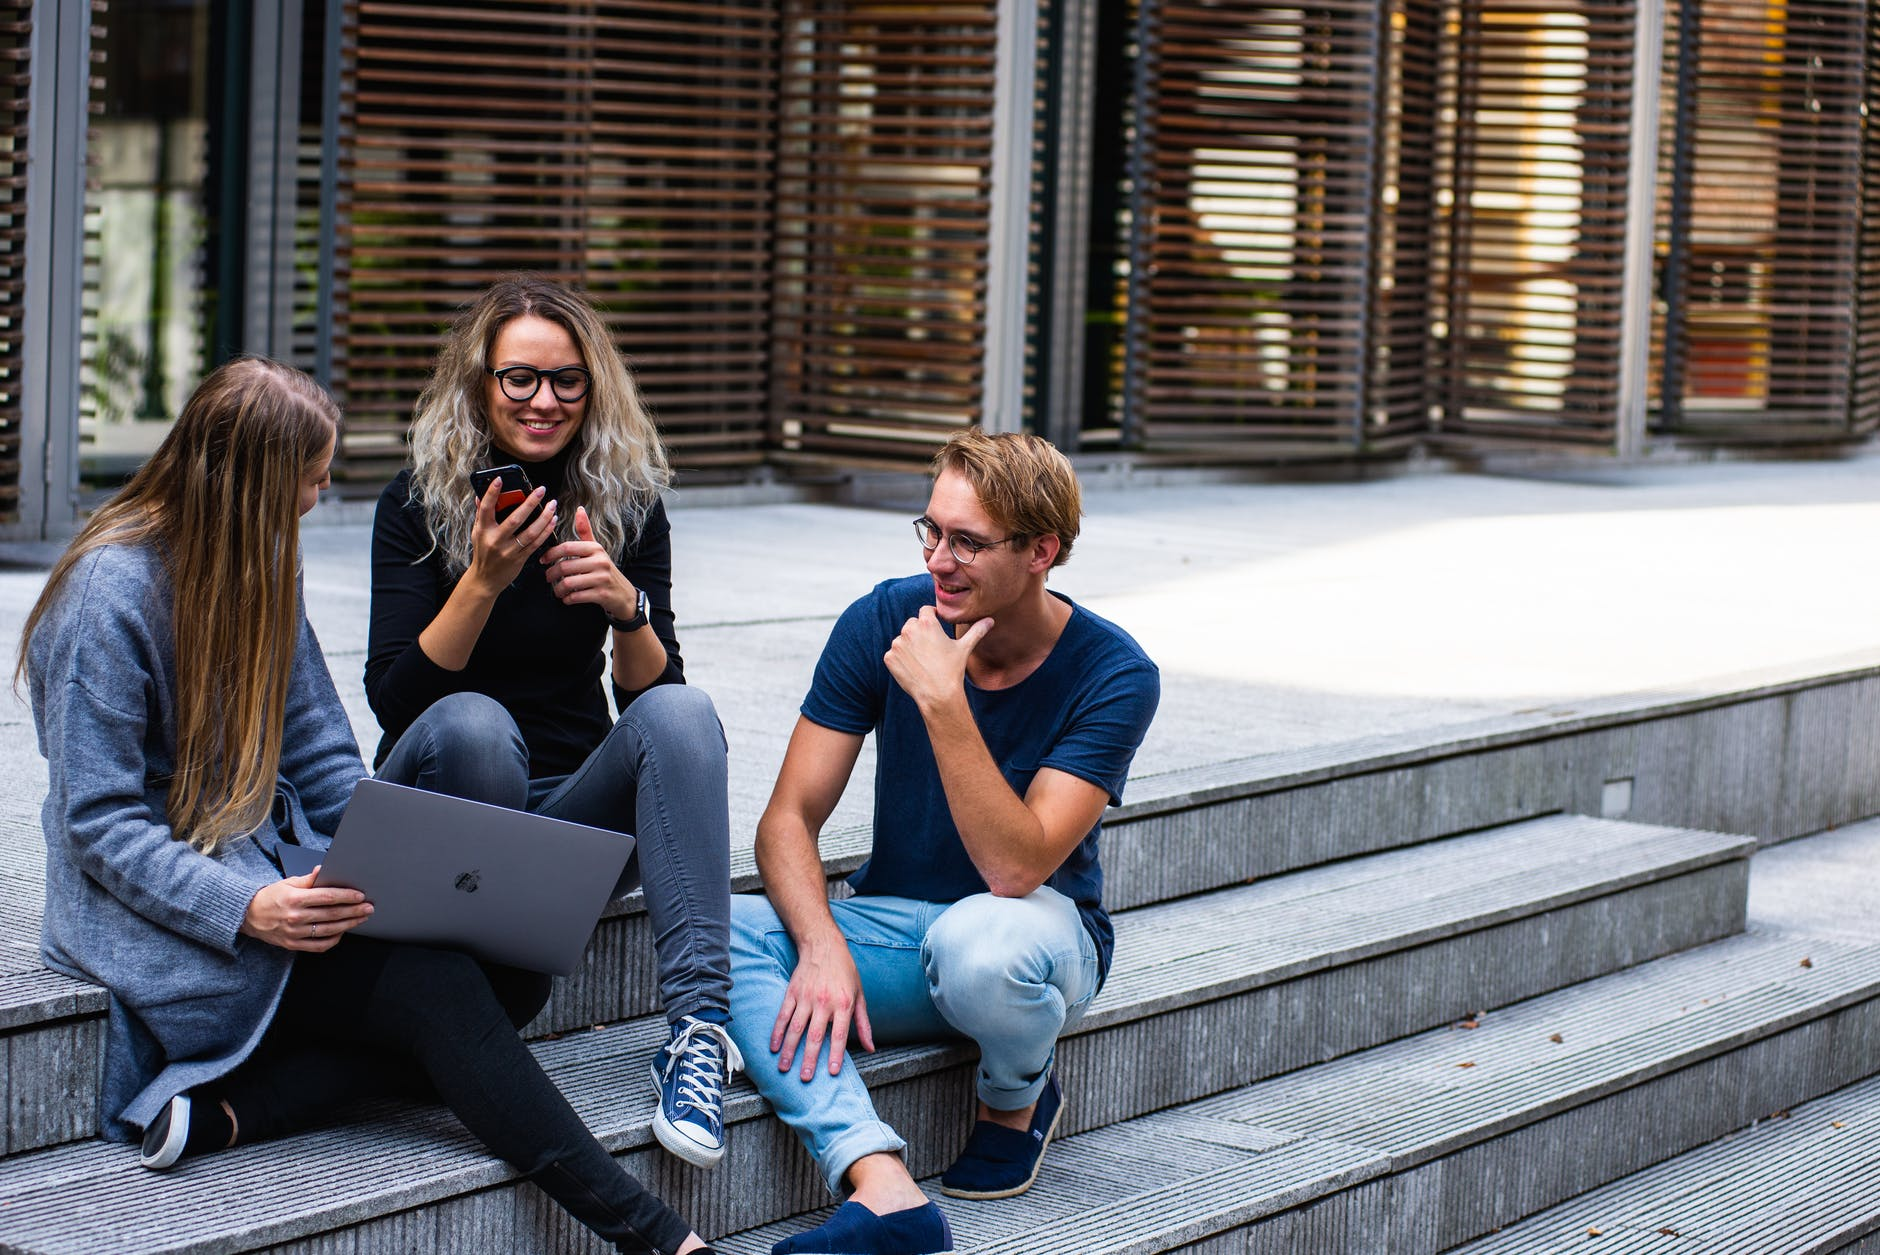 Student Events in Sydney 2021